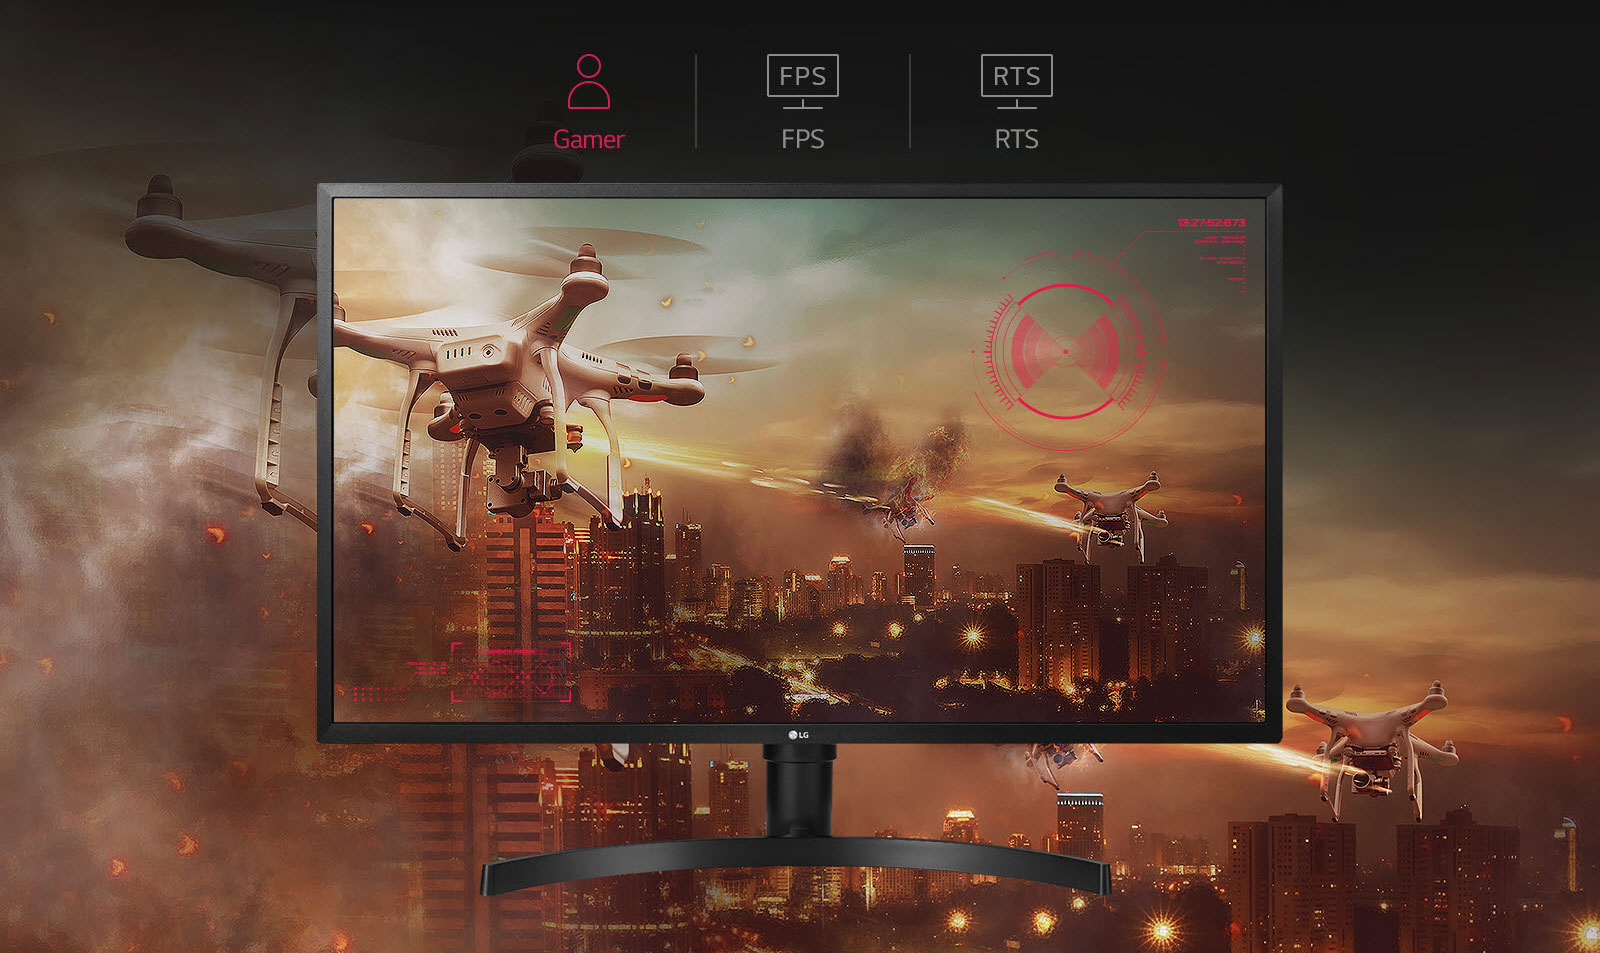 LG 32UK550-B monitor facing forward with drones over a desert city skyline